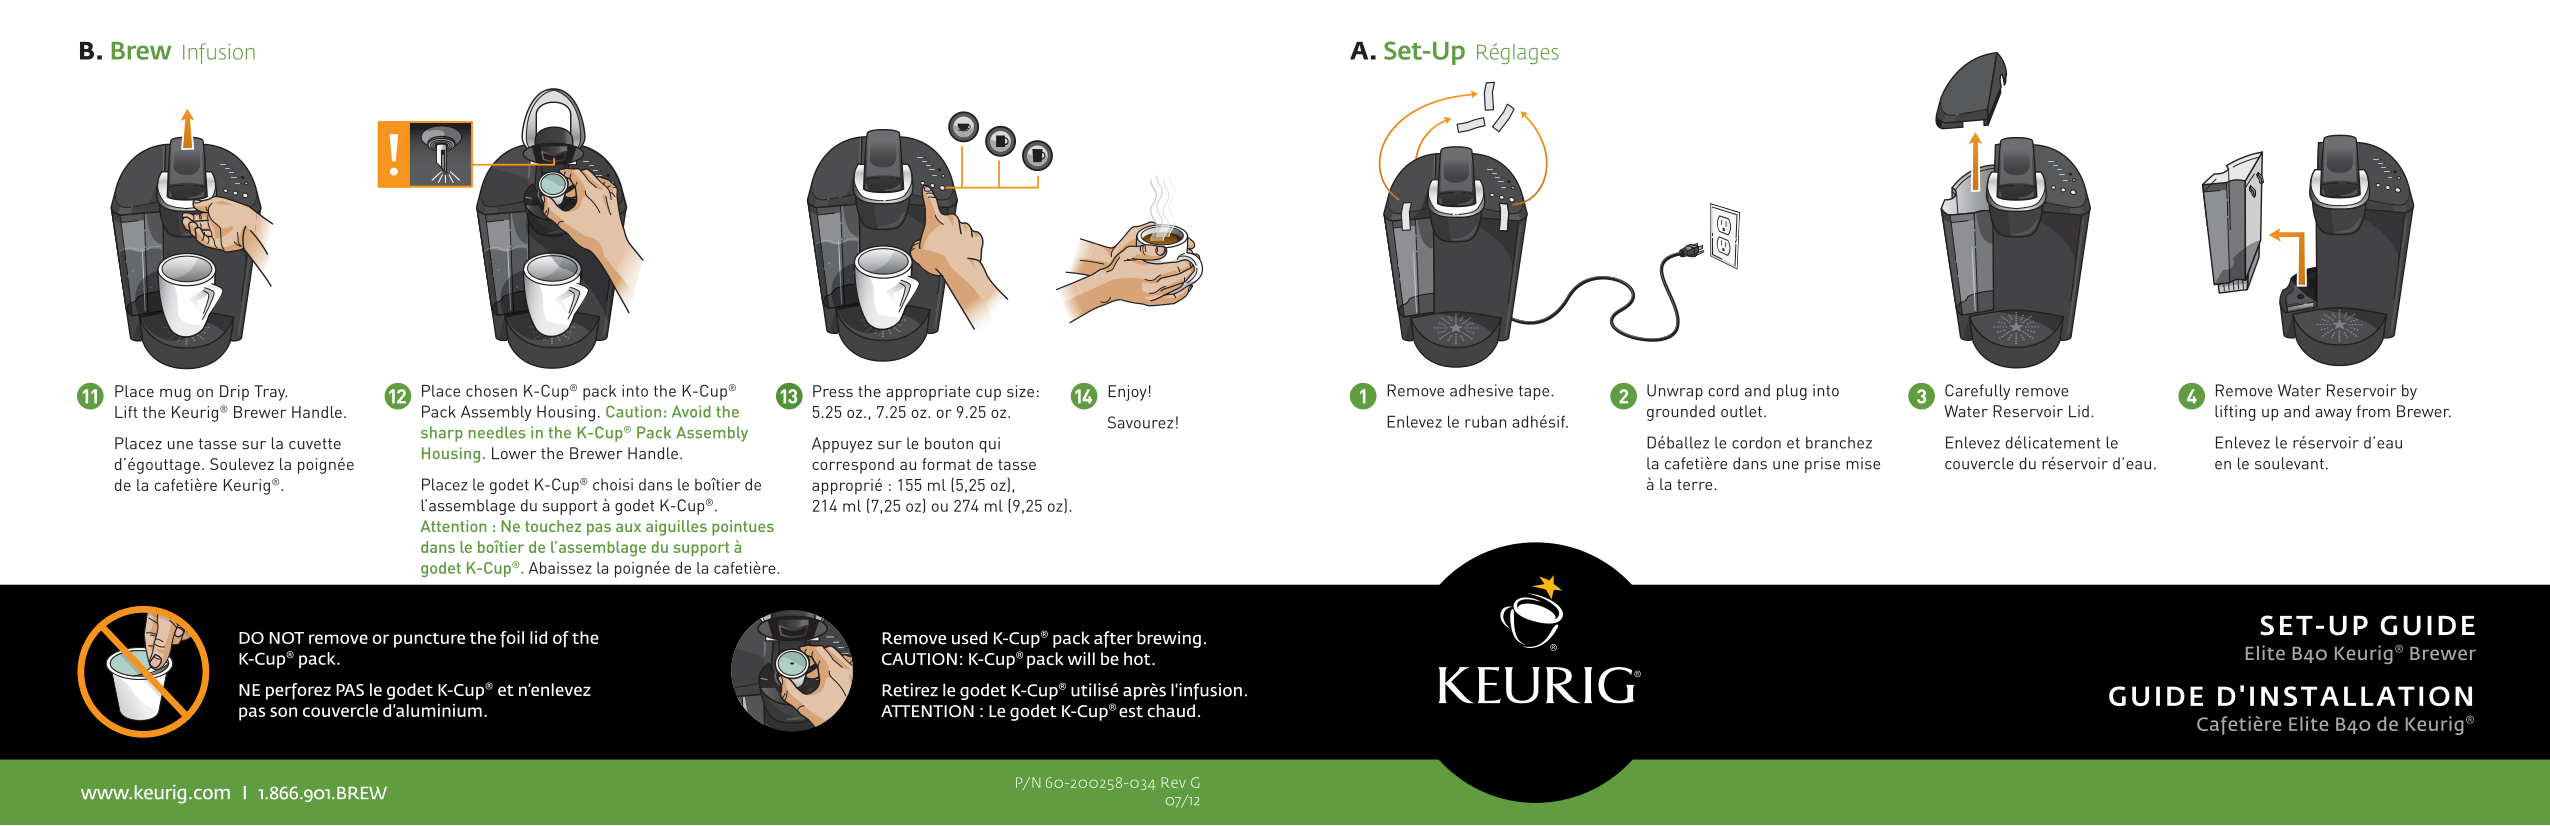 Keurig Elite B40 Manual